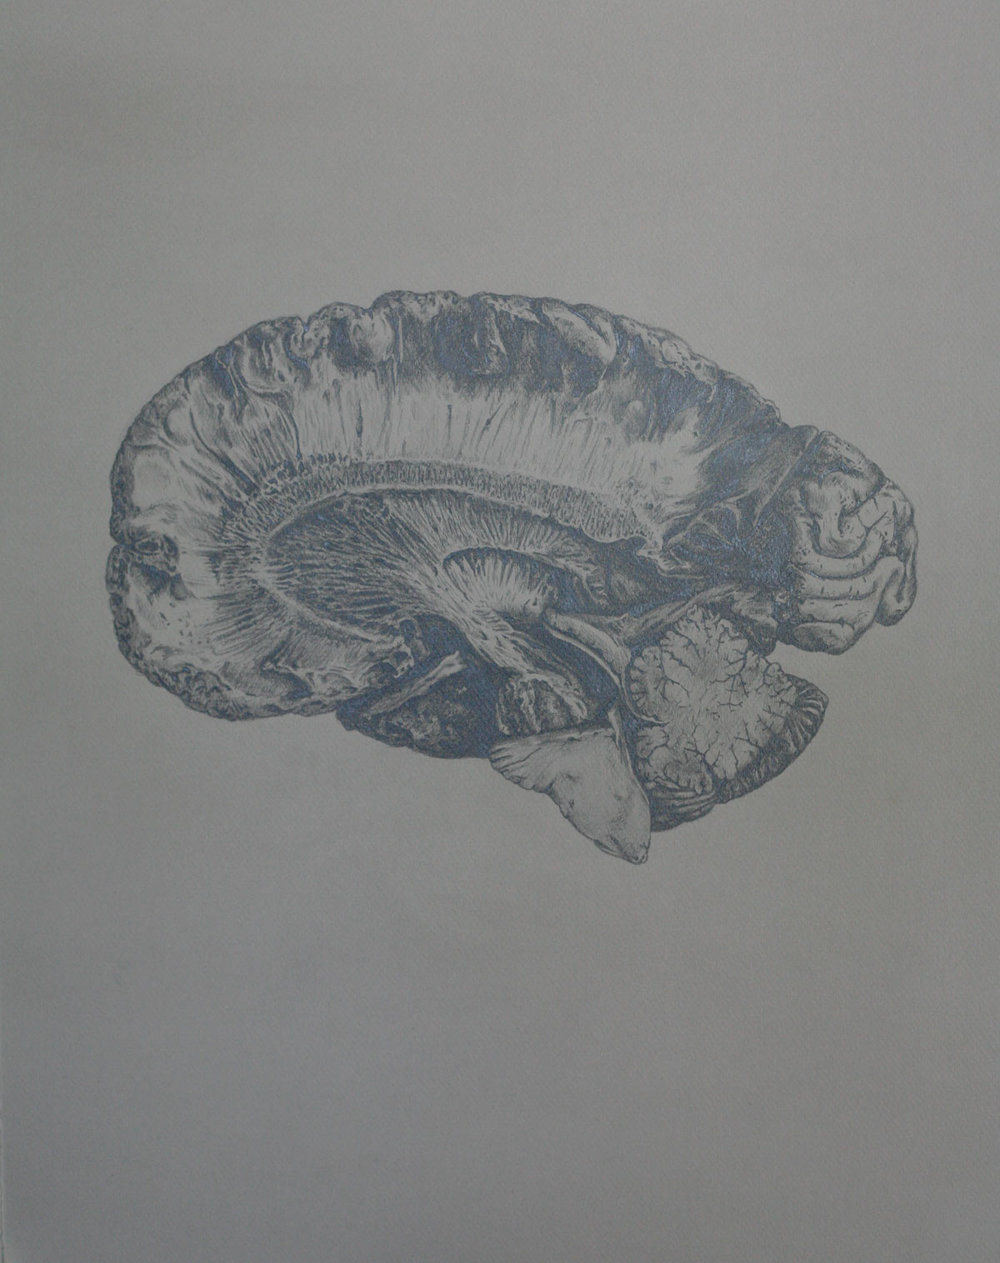 Mind and Specimen (Study no. 3)